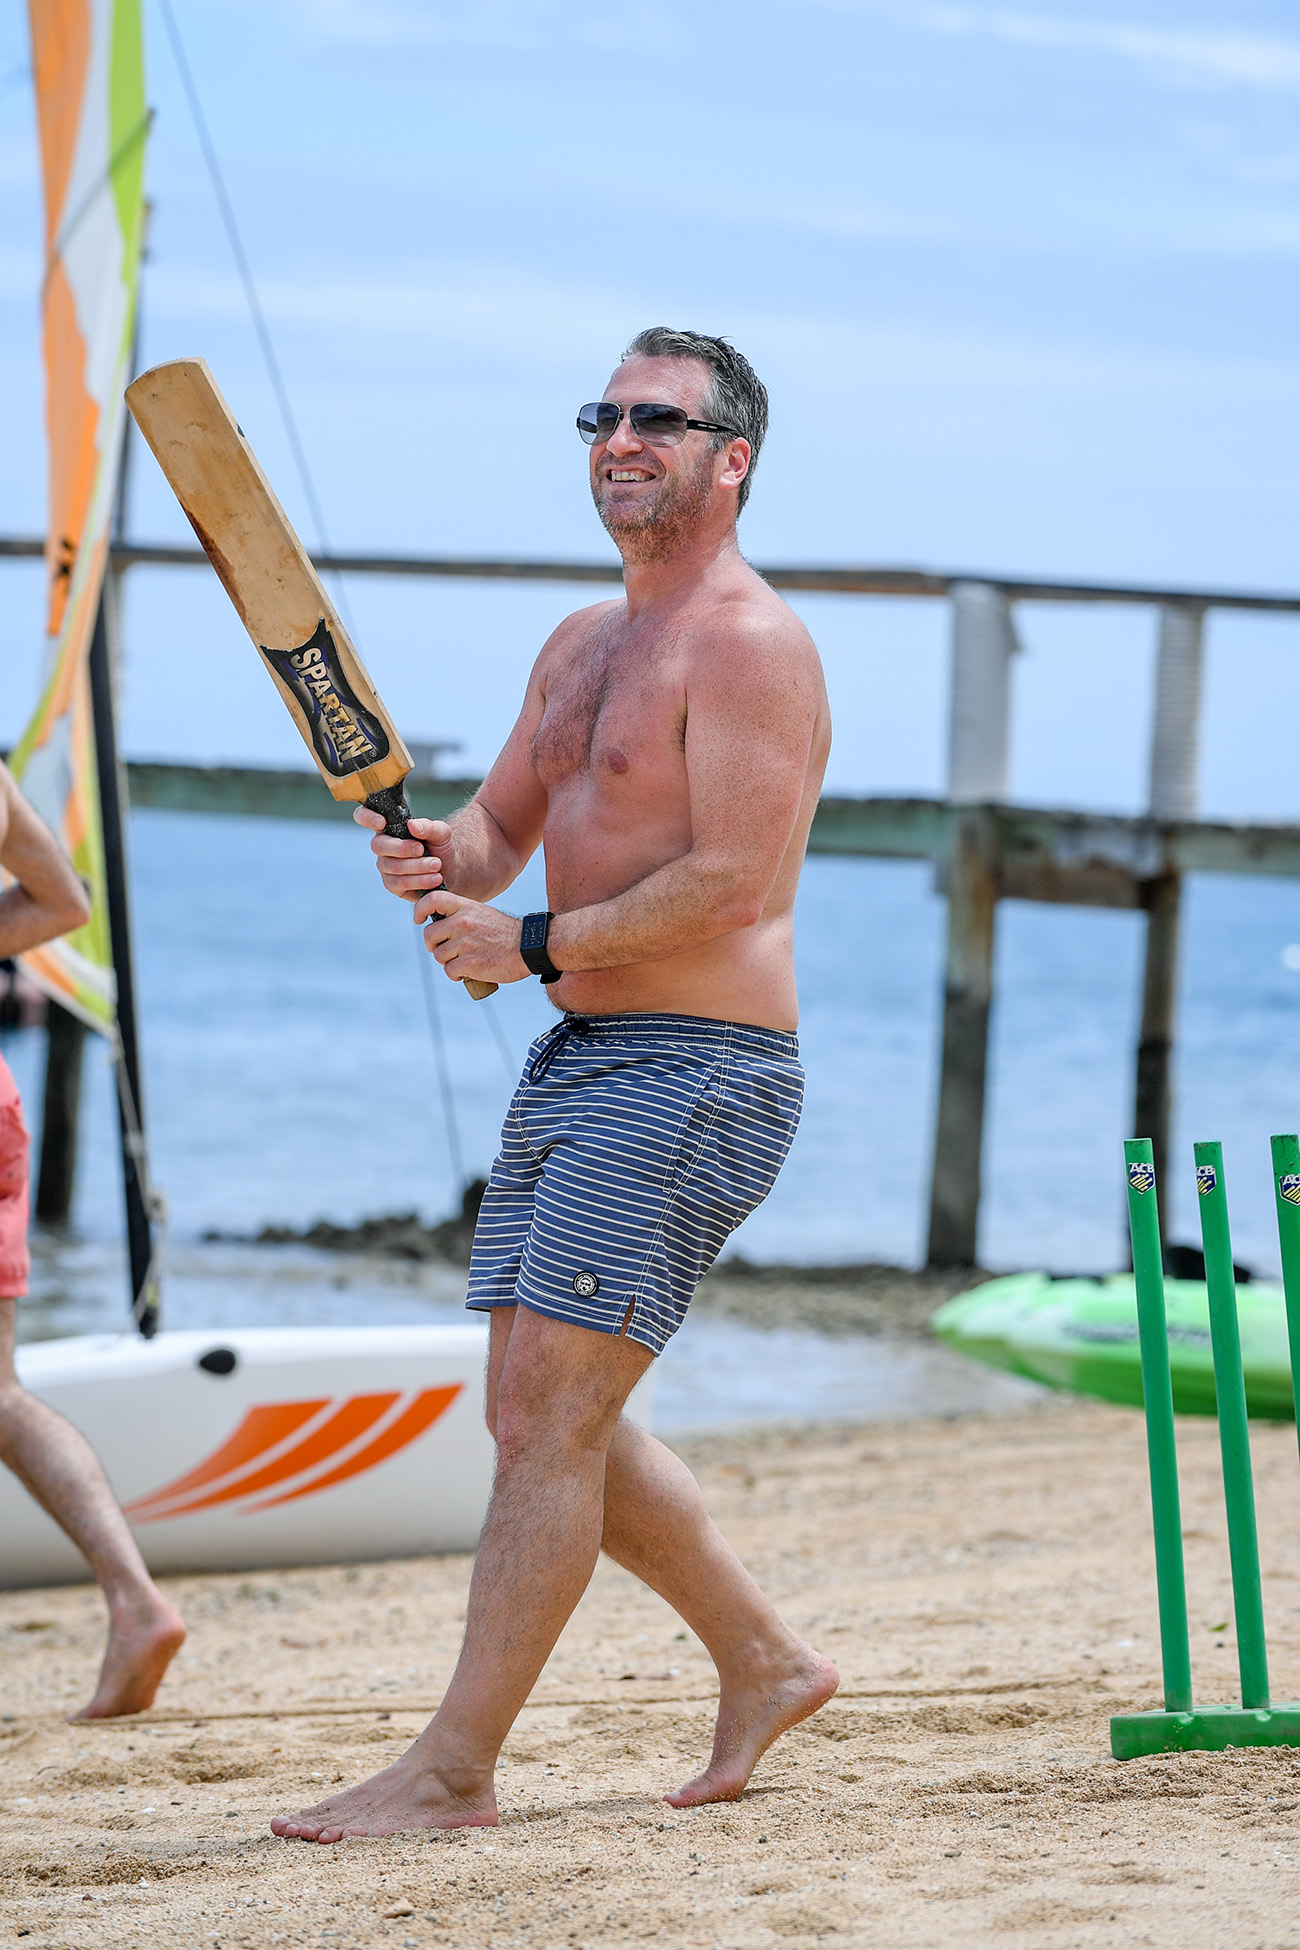 A dad watches the ball after batting while playing beach cricket